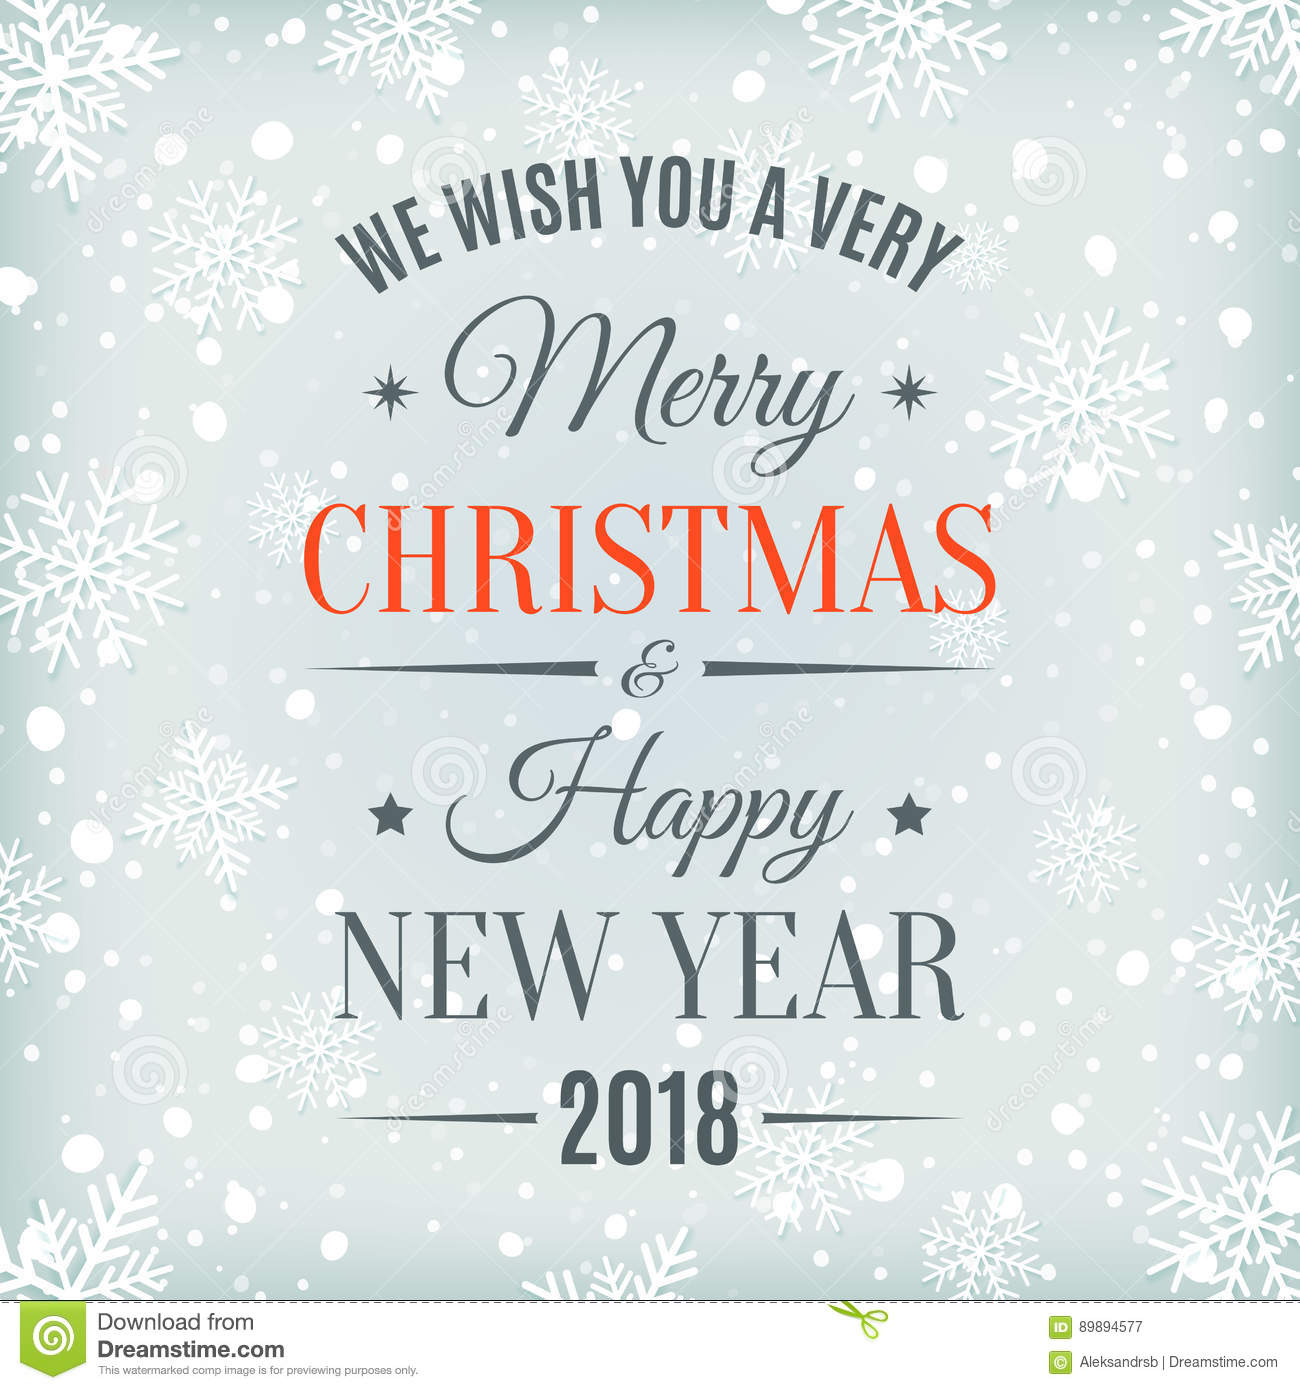 merry christmas and happy new year 2018 card